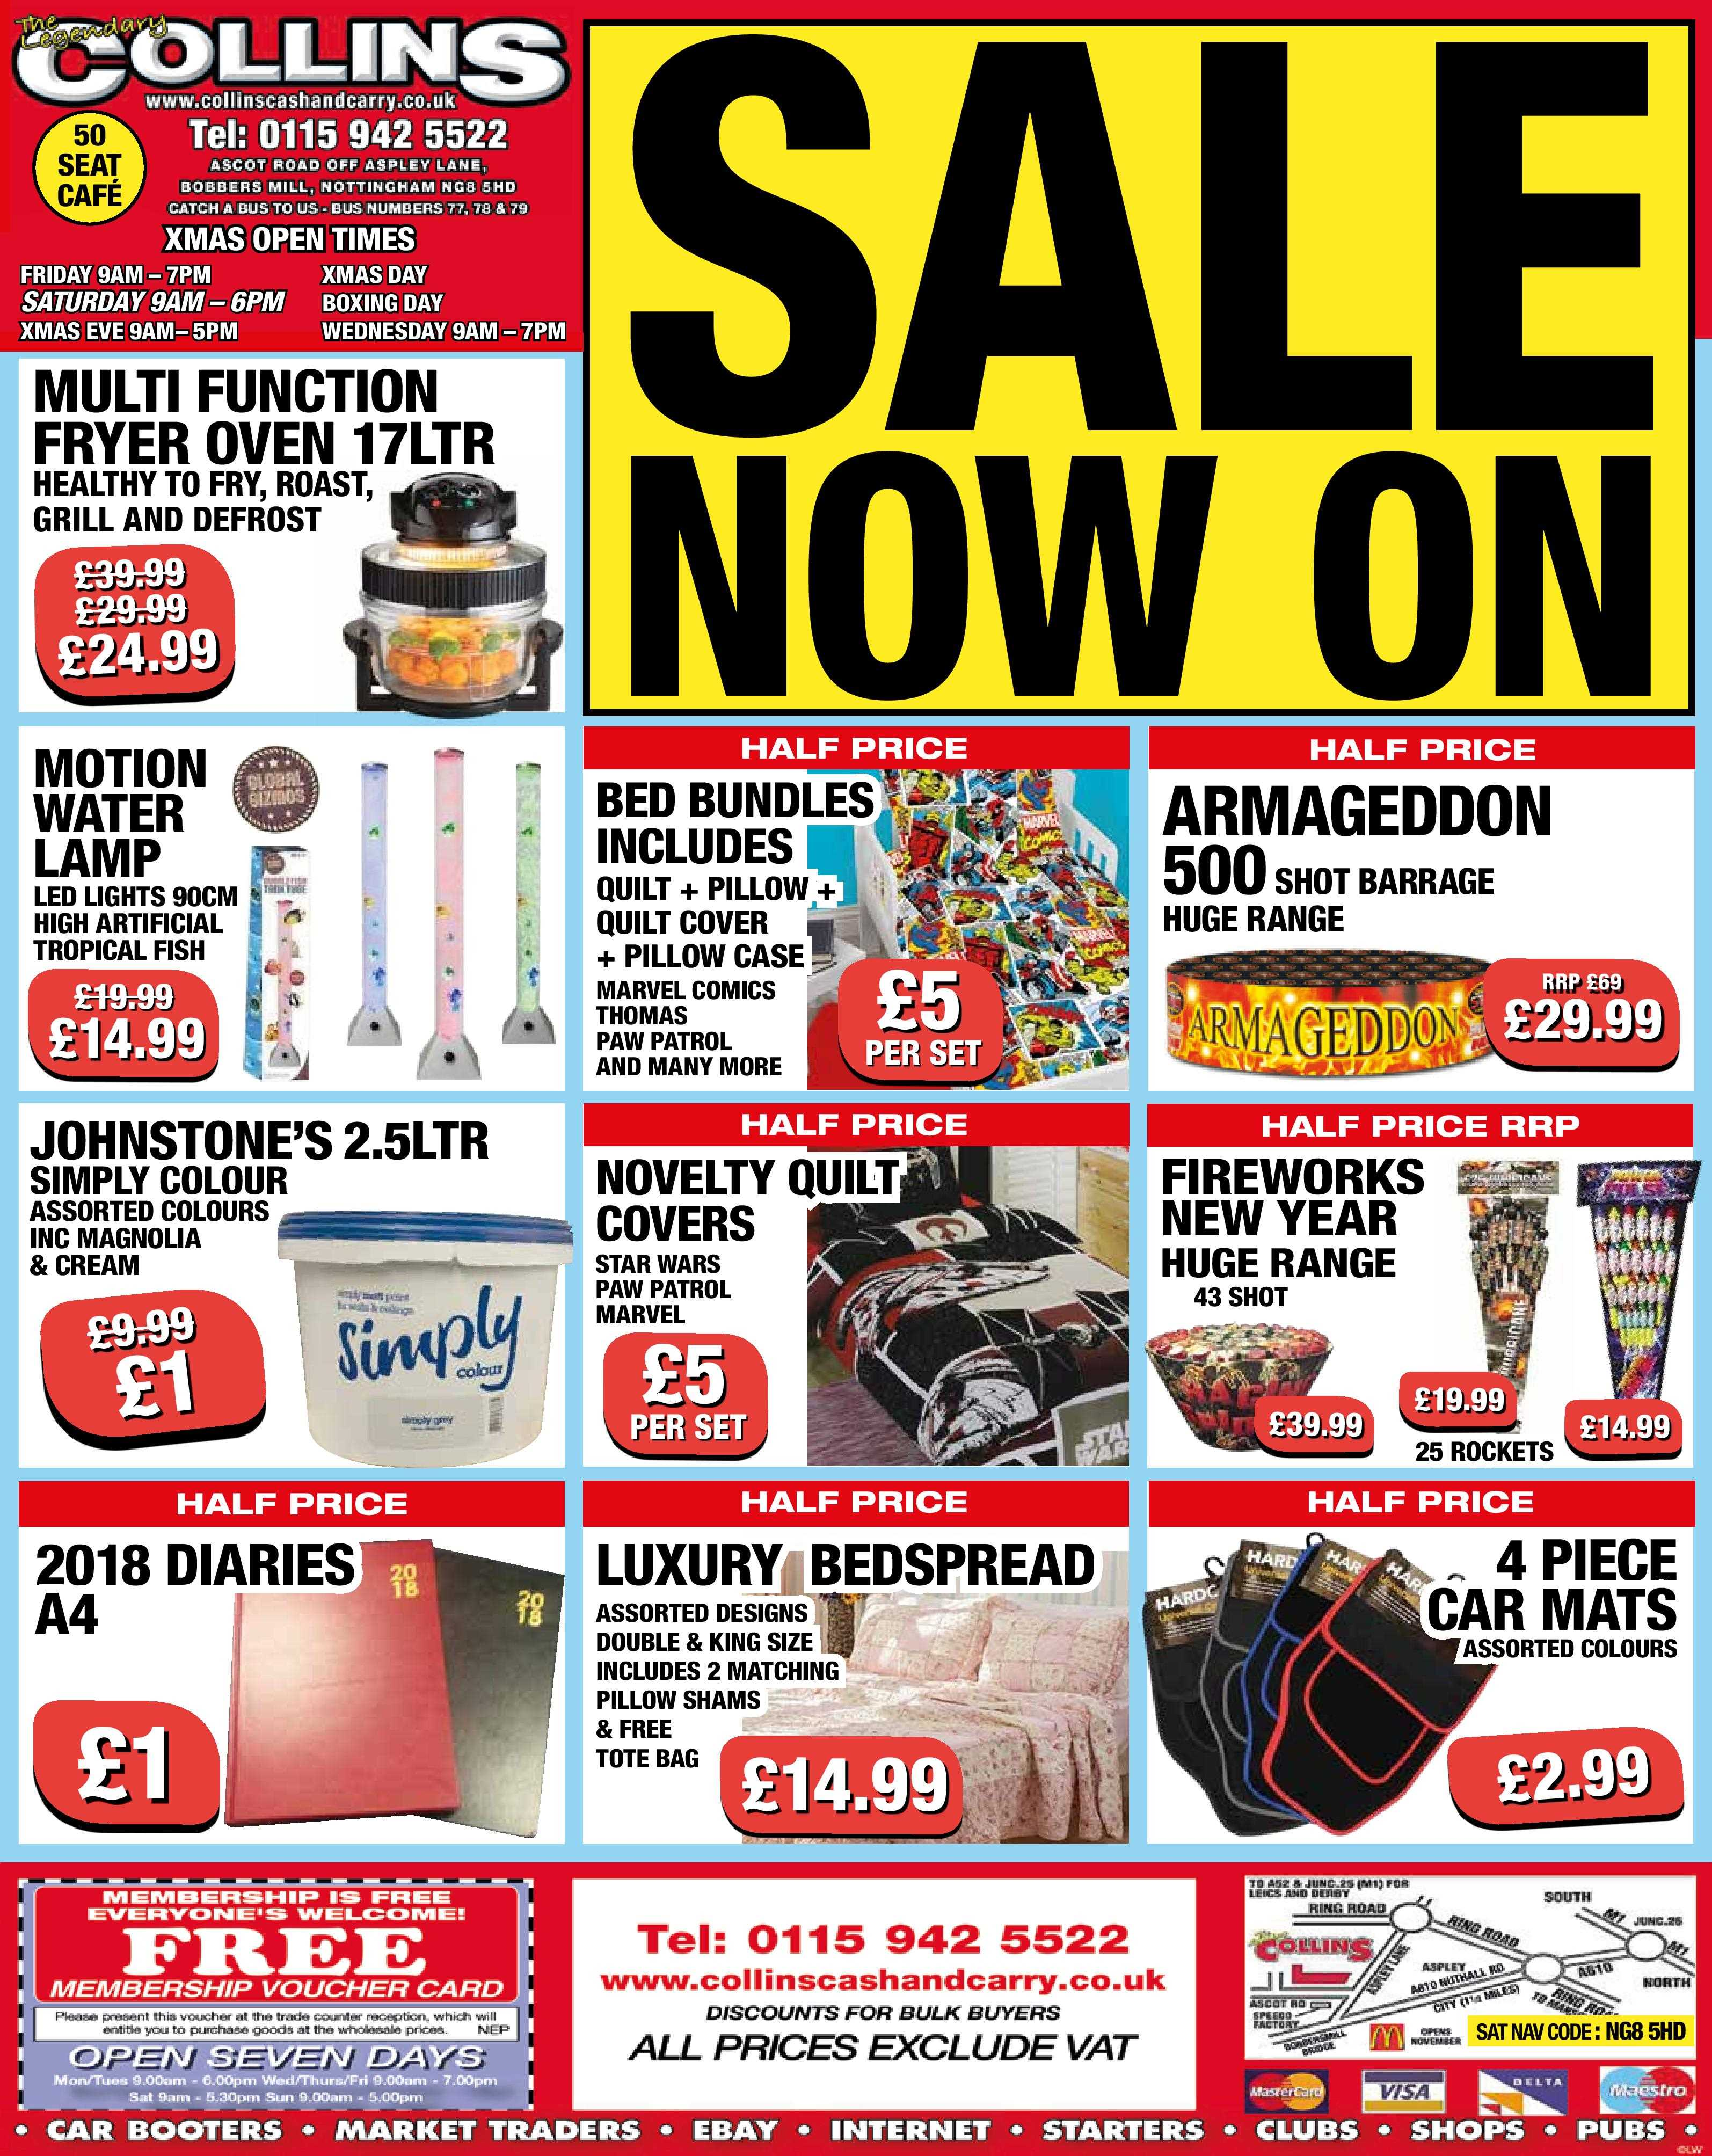 Xmas is almost there – Weekly Offers at Collins Cash and Carry